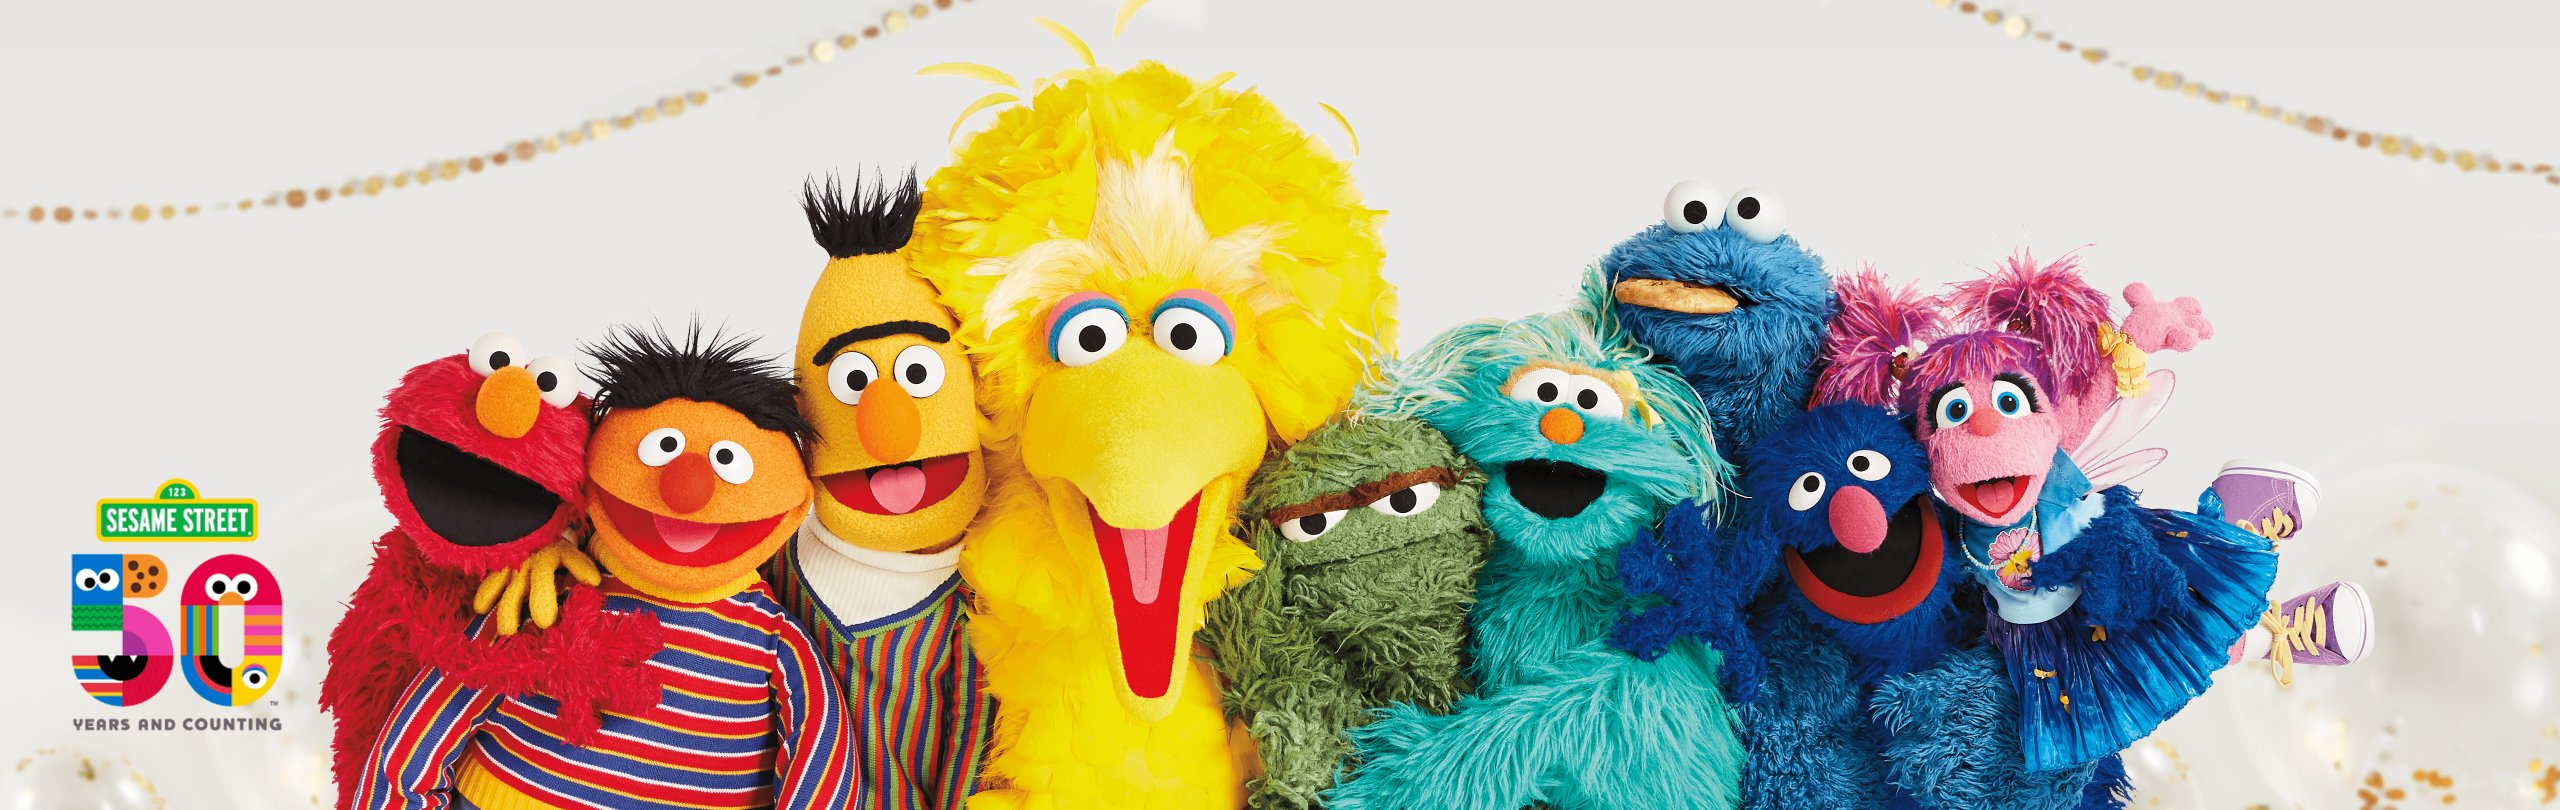 Group of Sesame Street muppets smiling and hugging